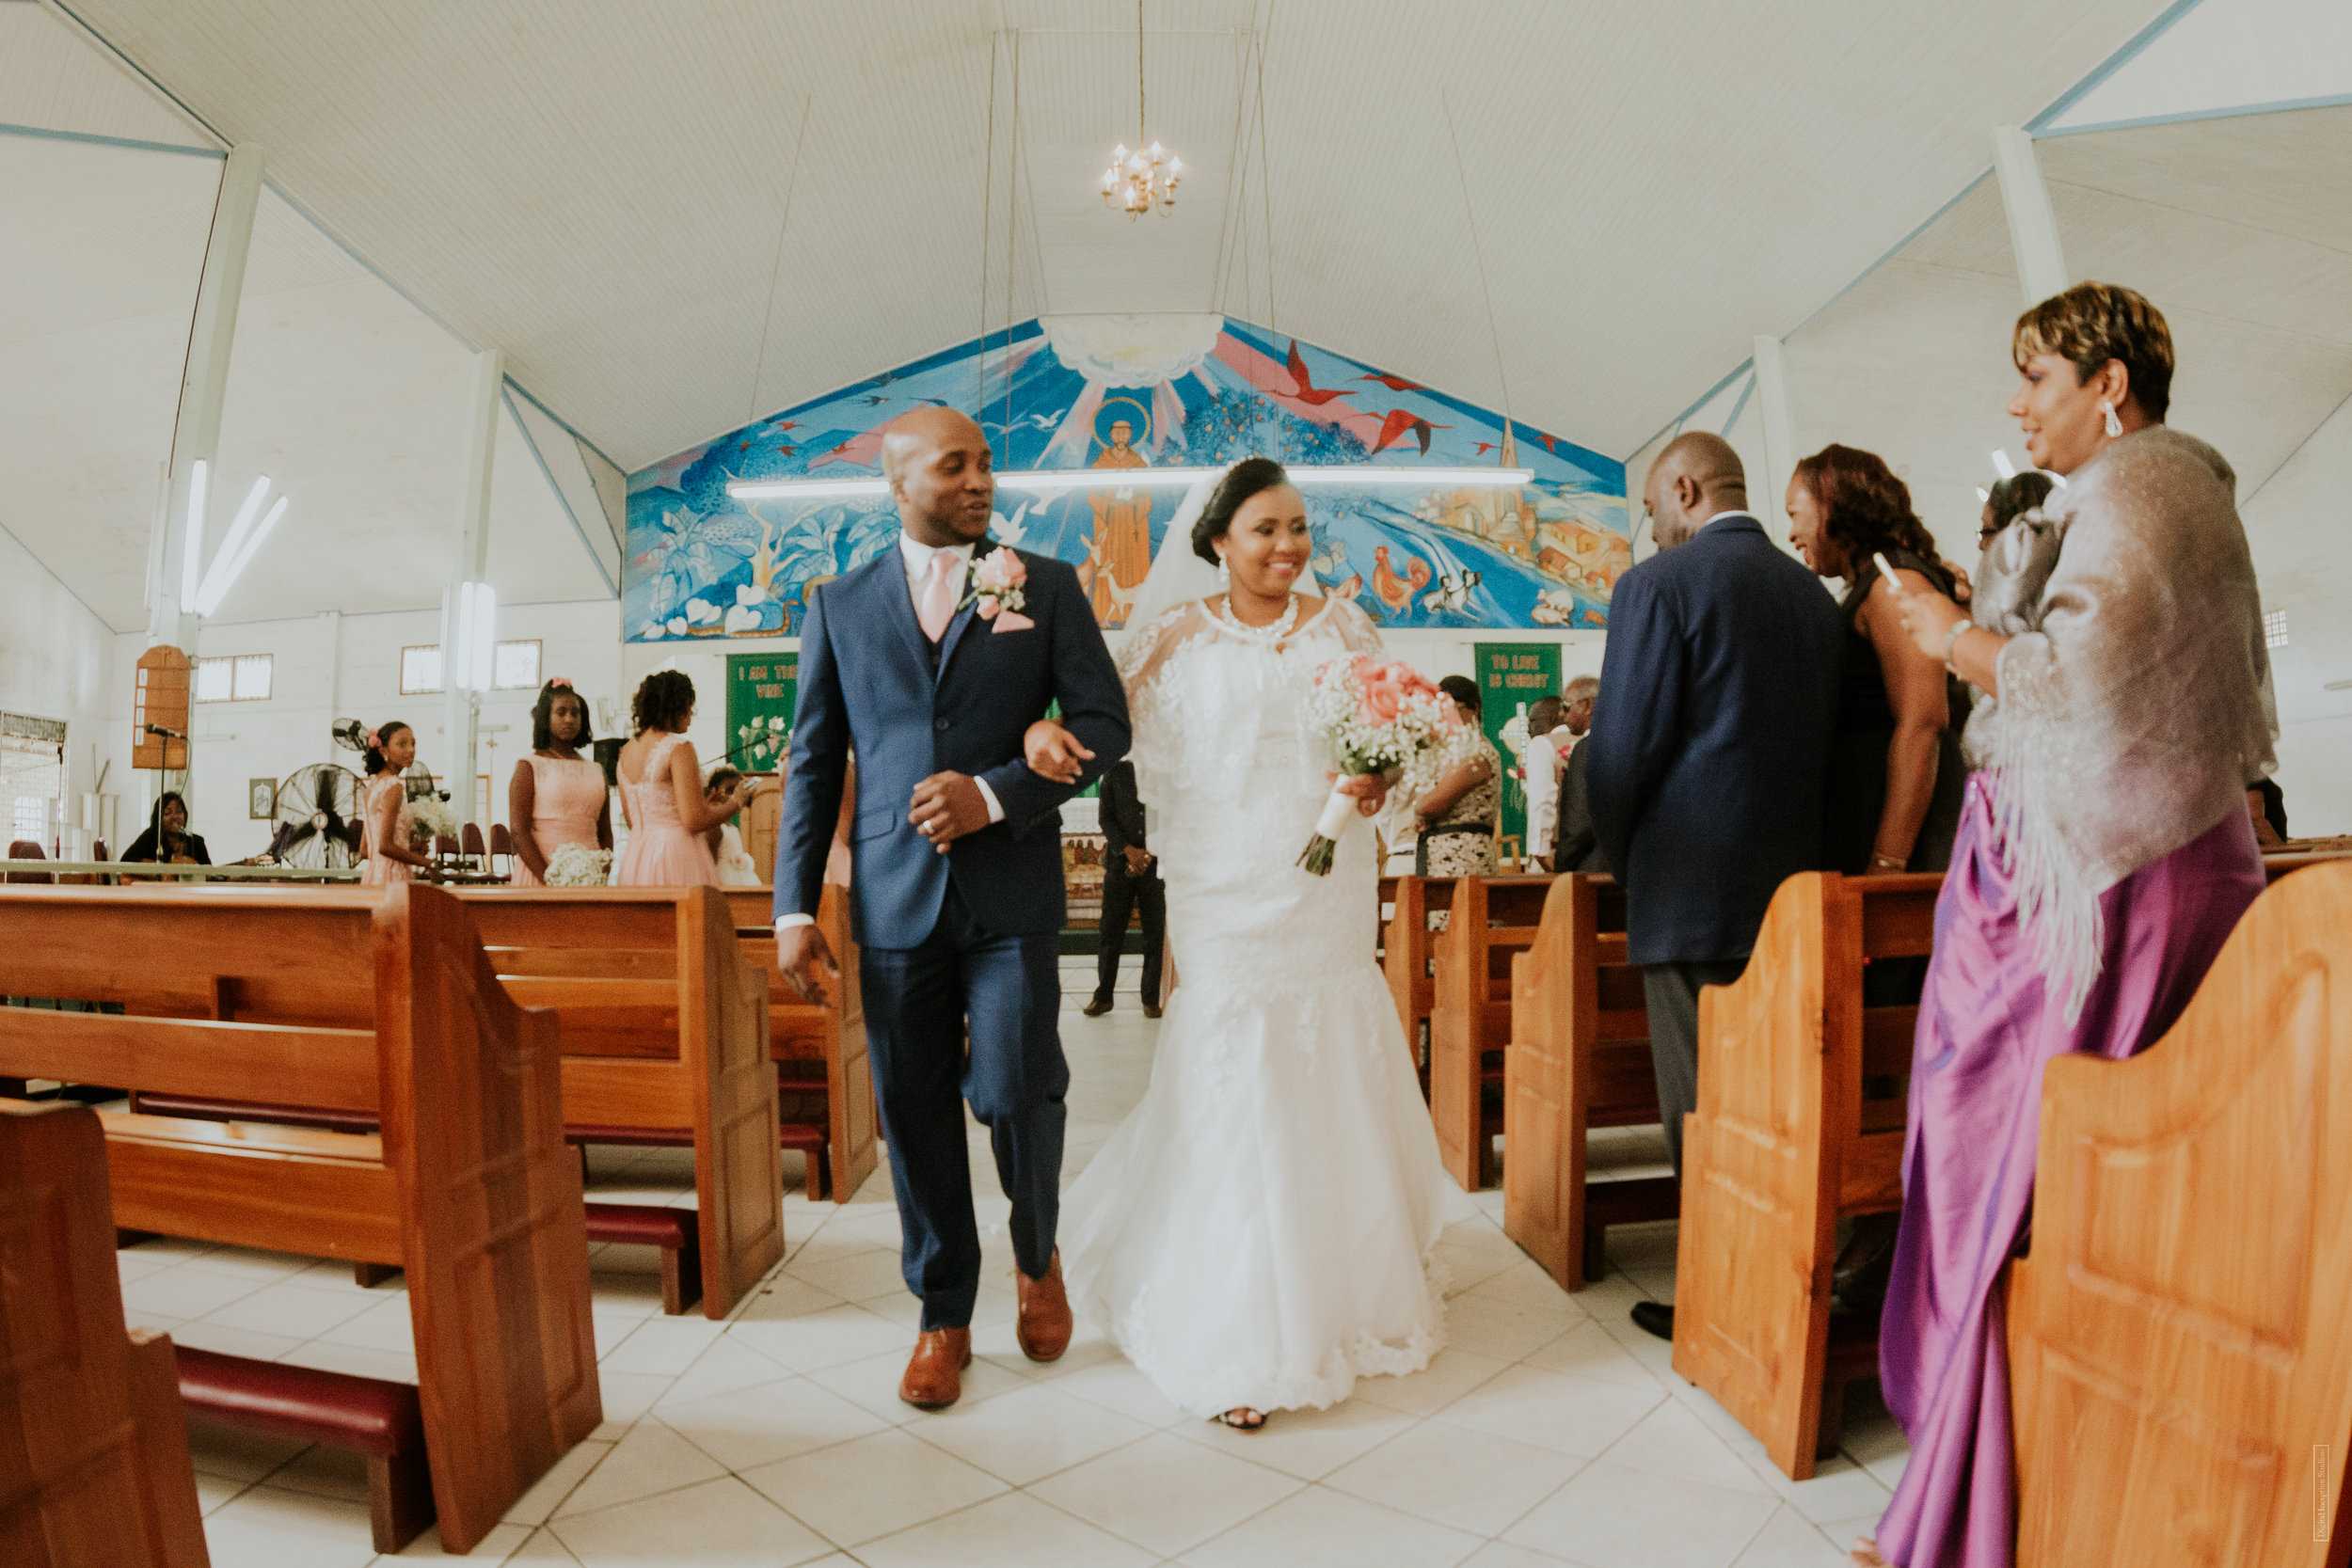 Our Wedding (The Reyes')-159.jpg